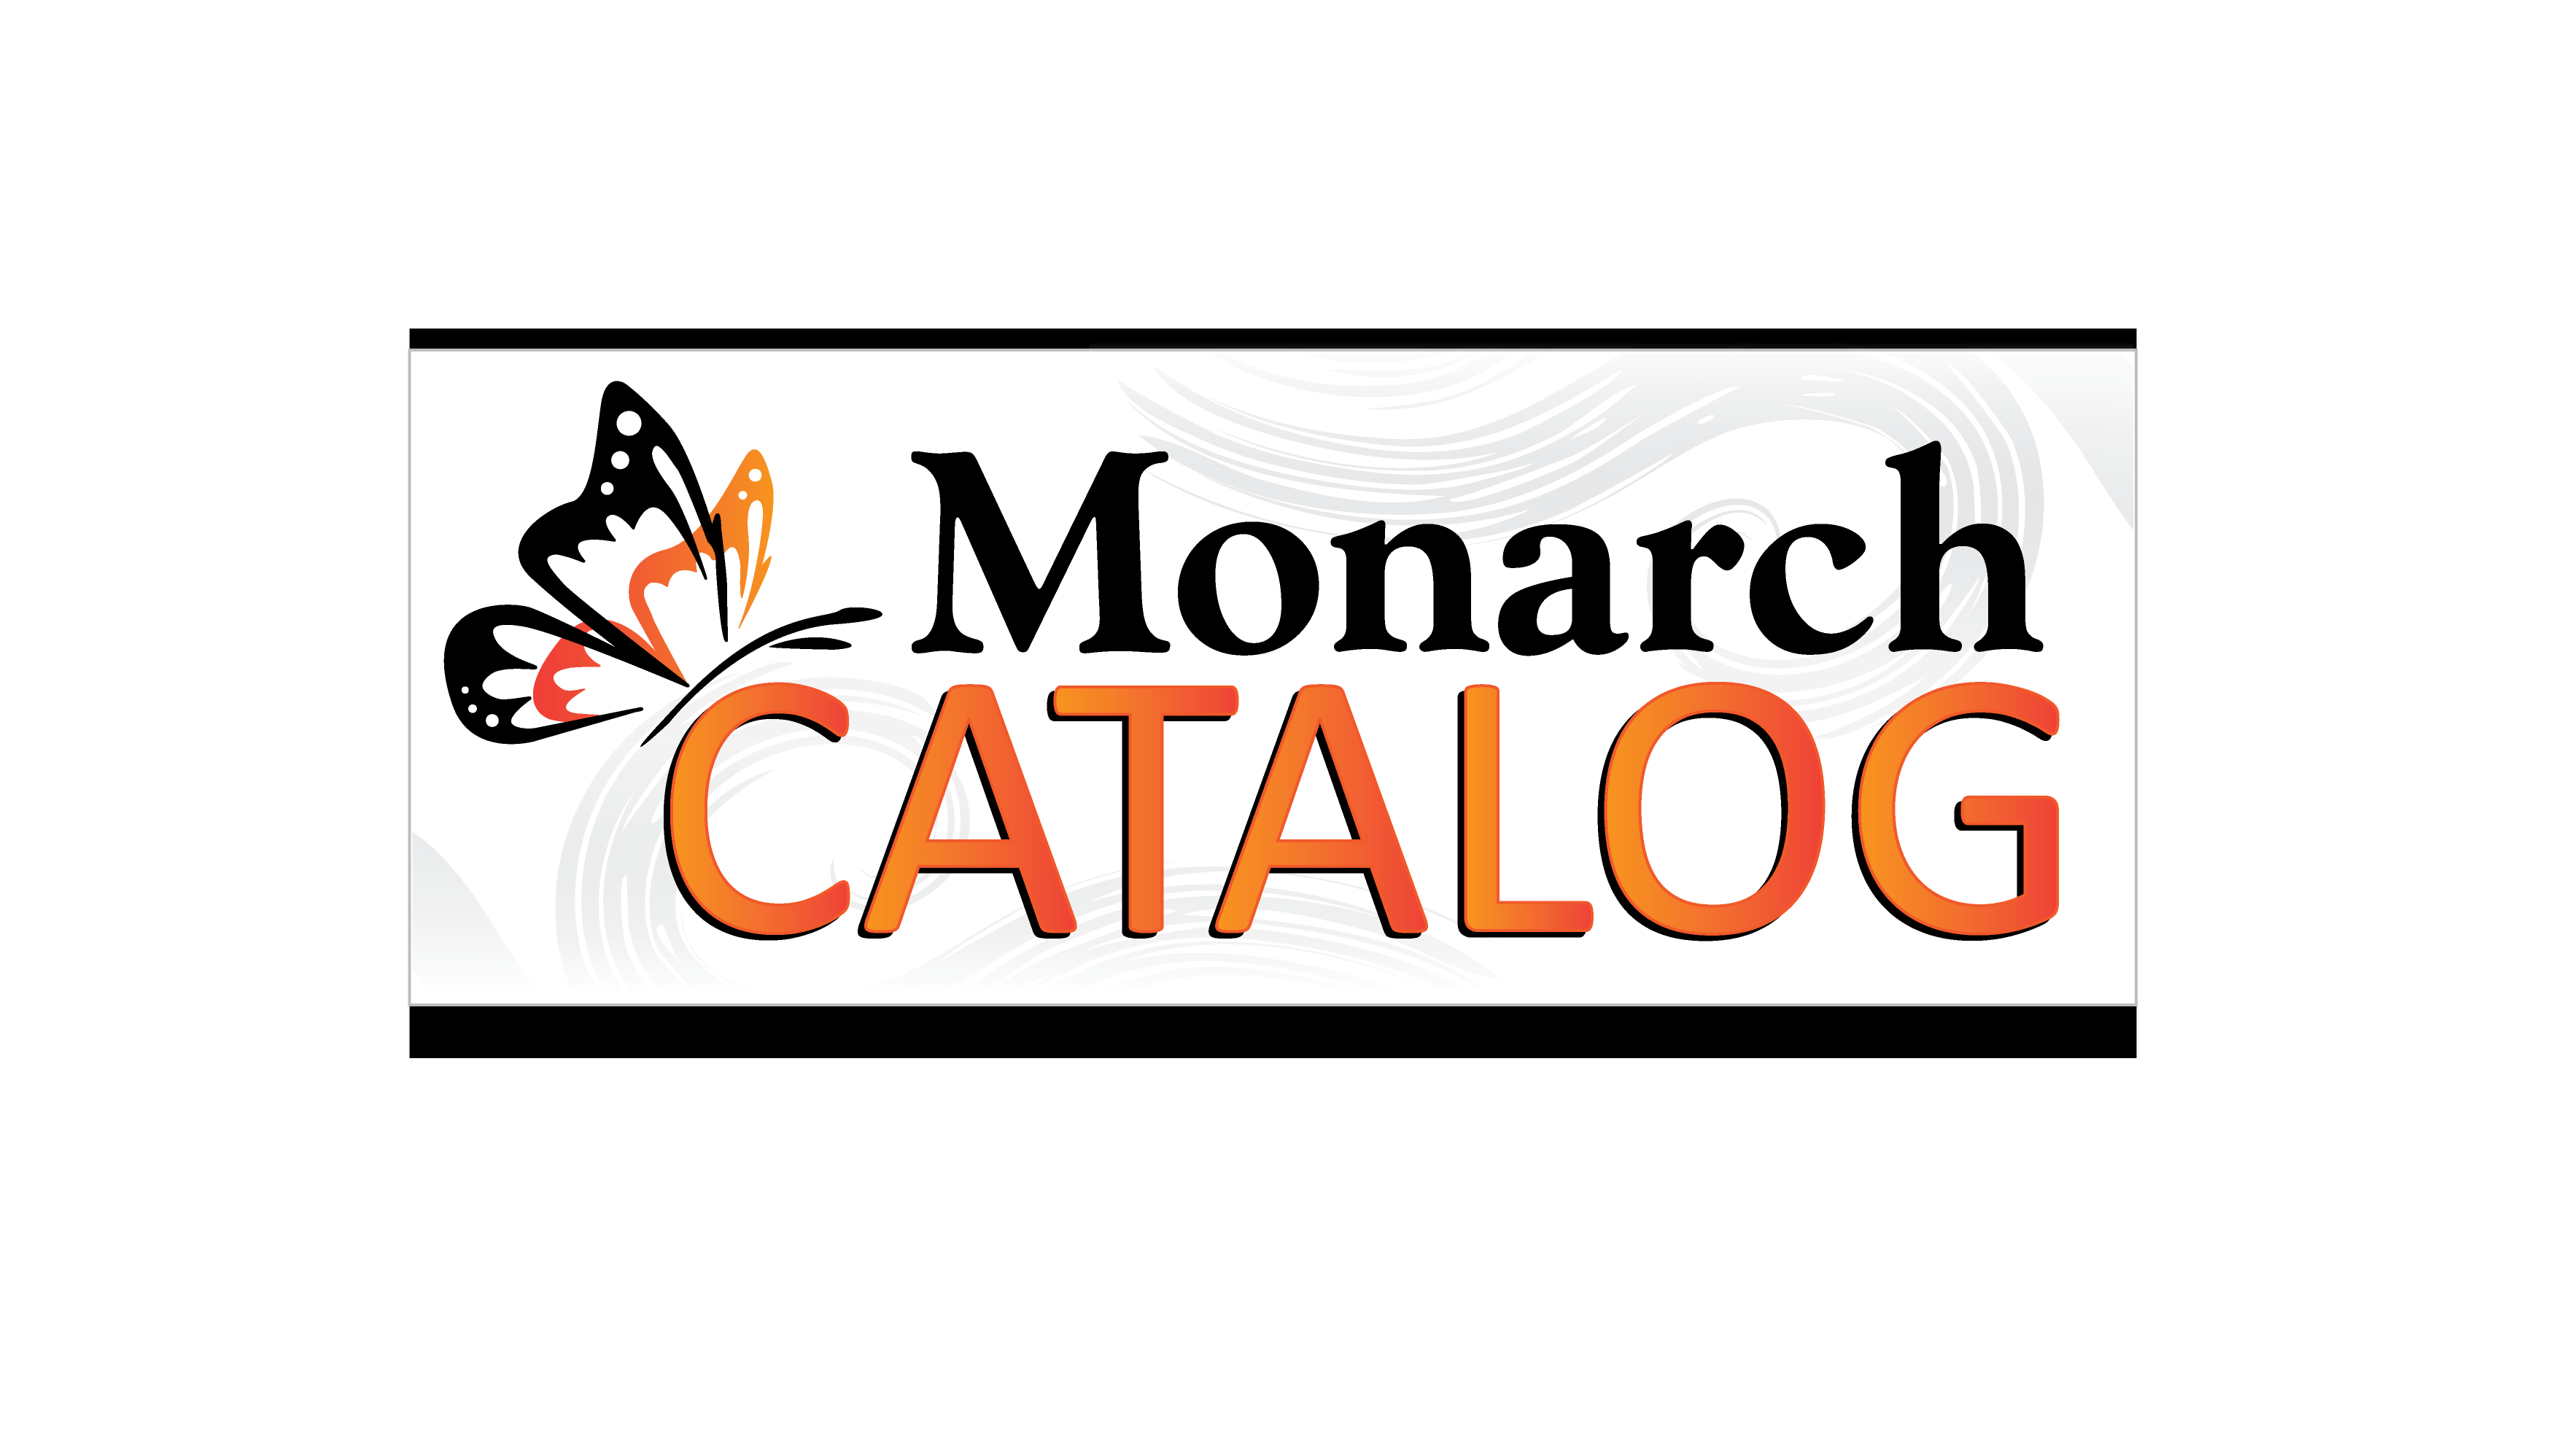 Monarch Catalog